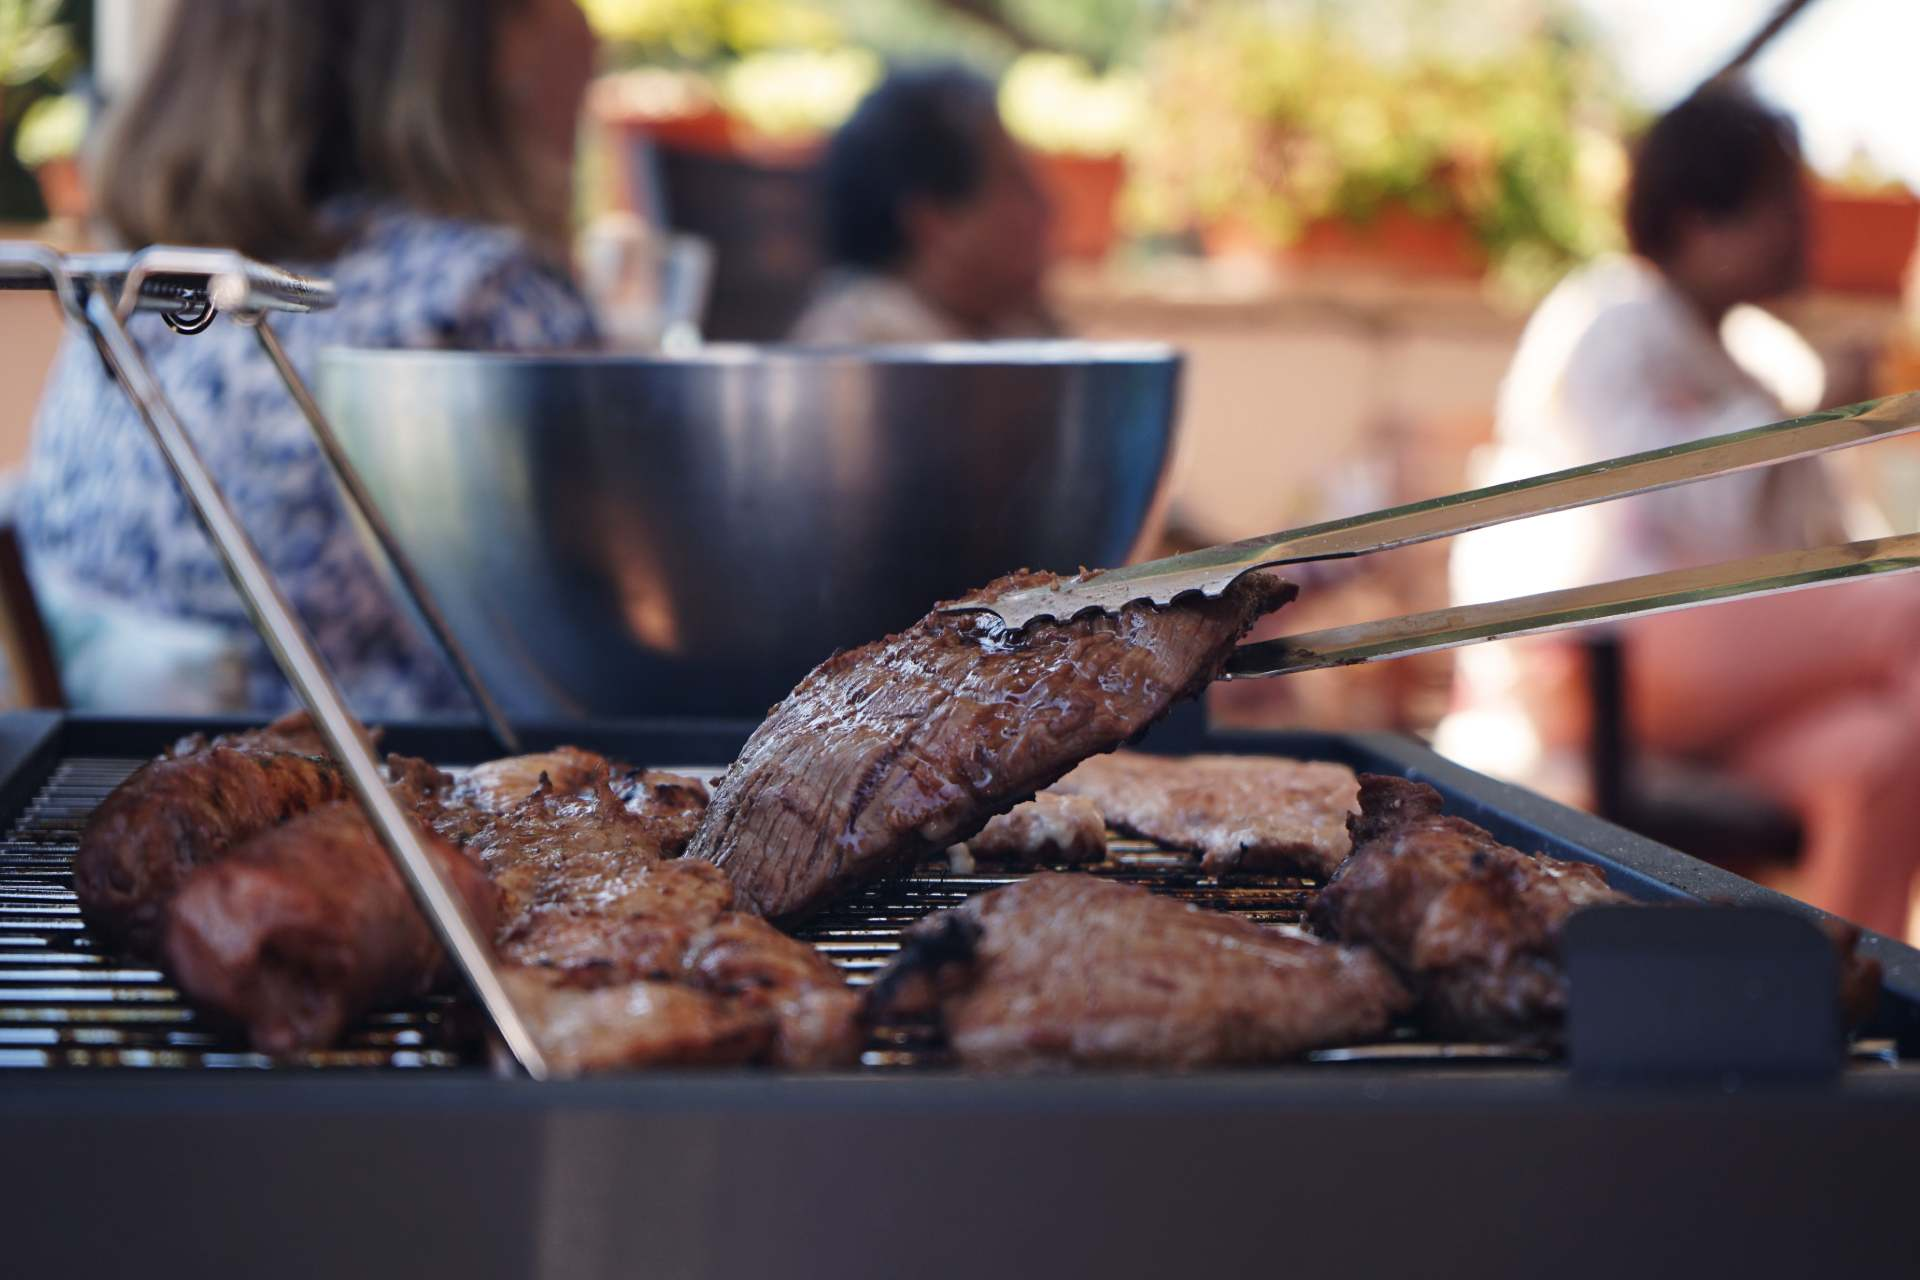 cooking brisket on barbecue ©iStock